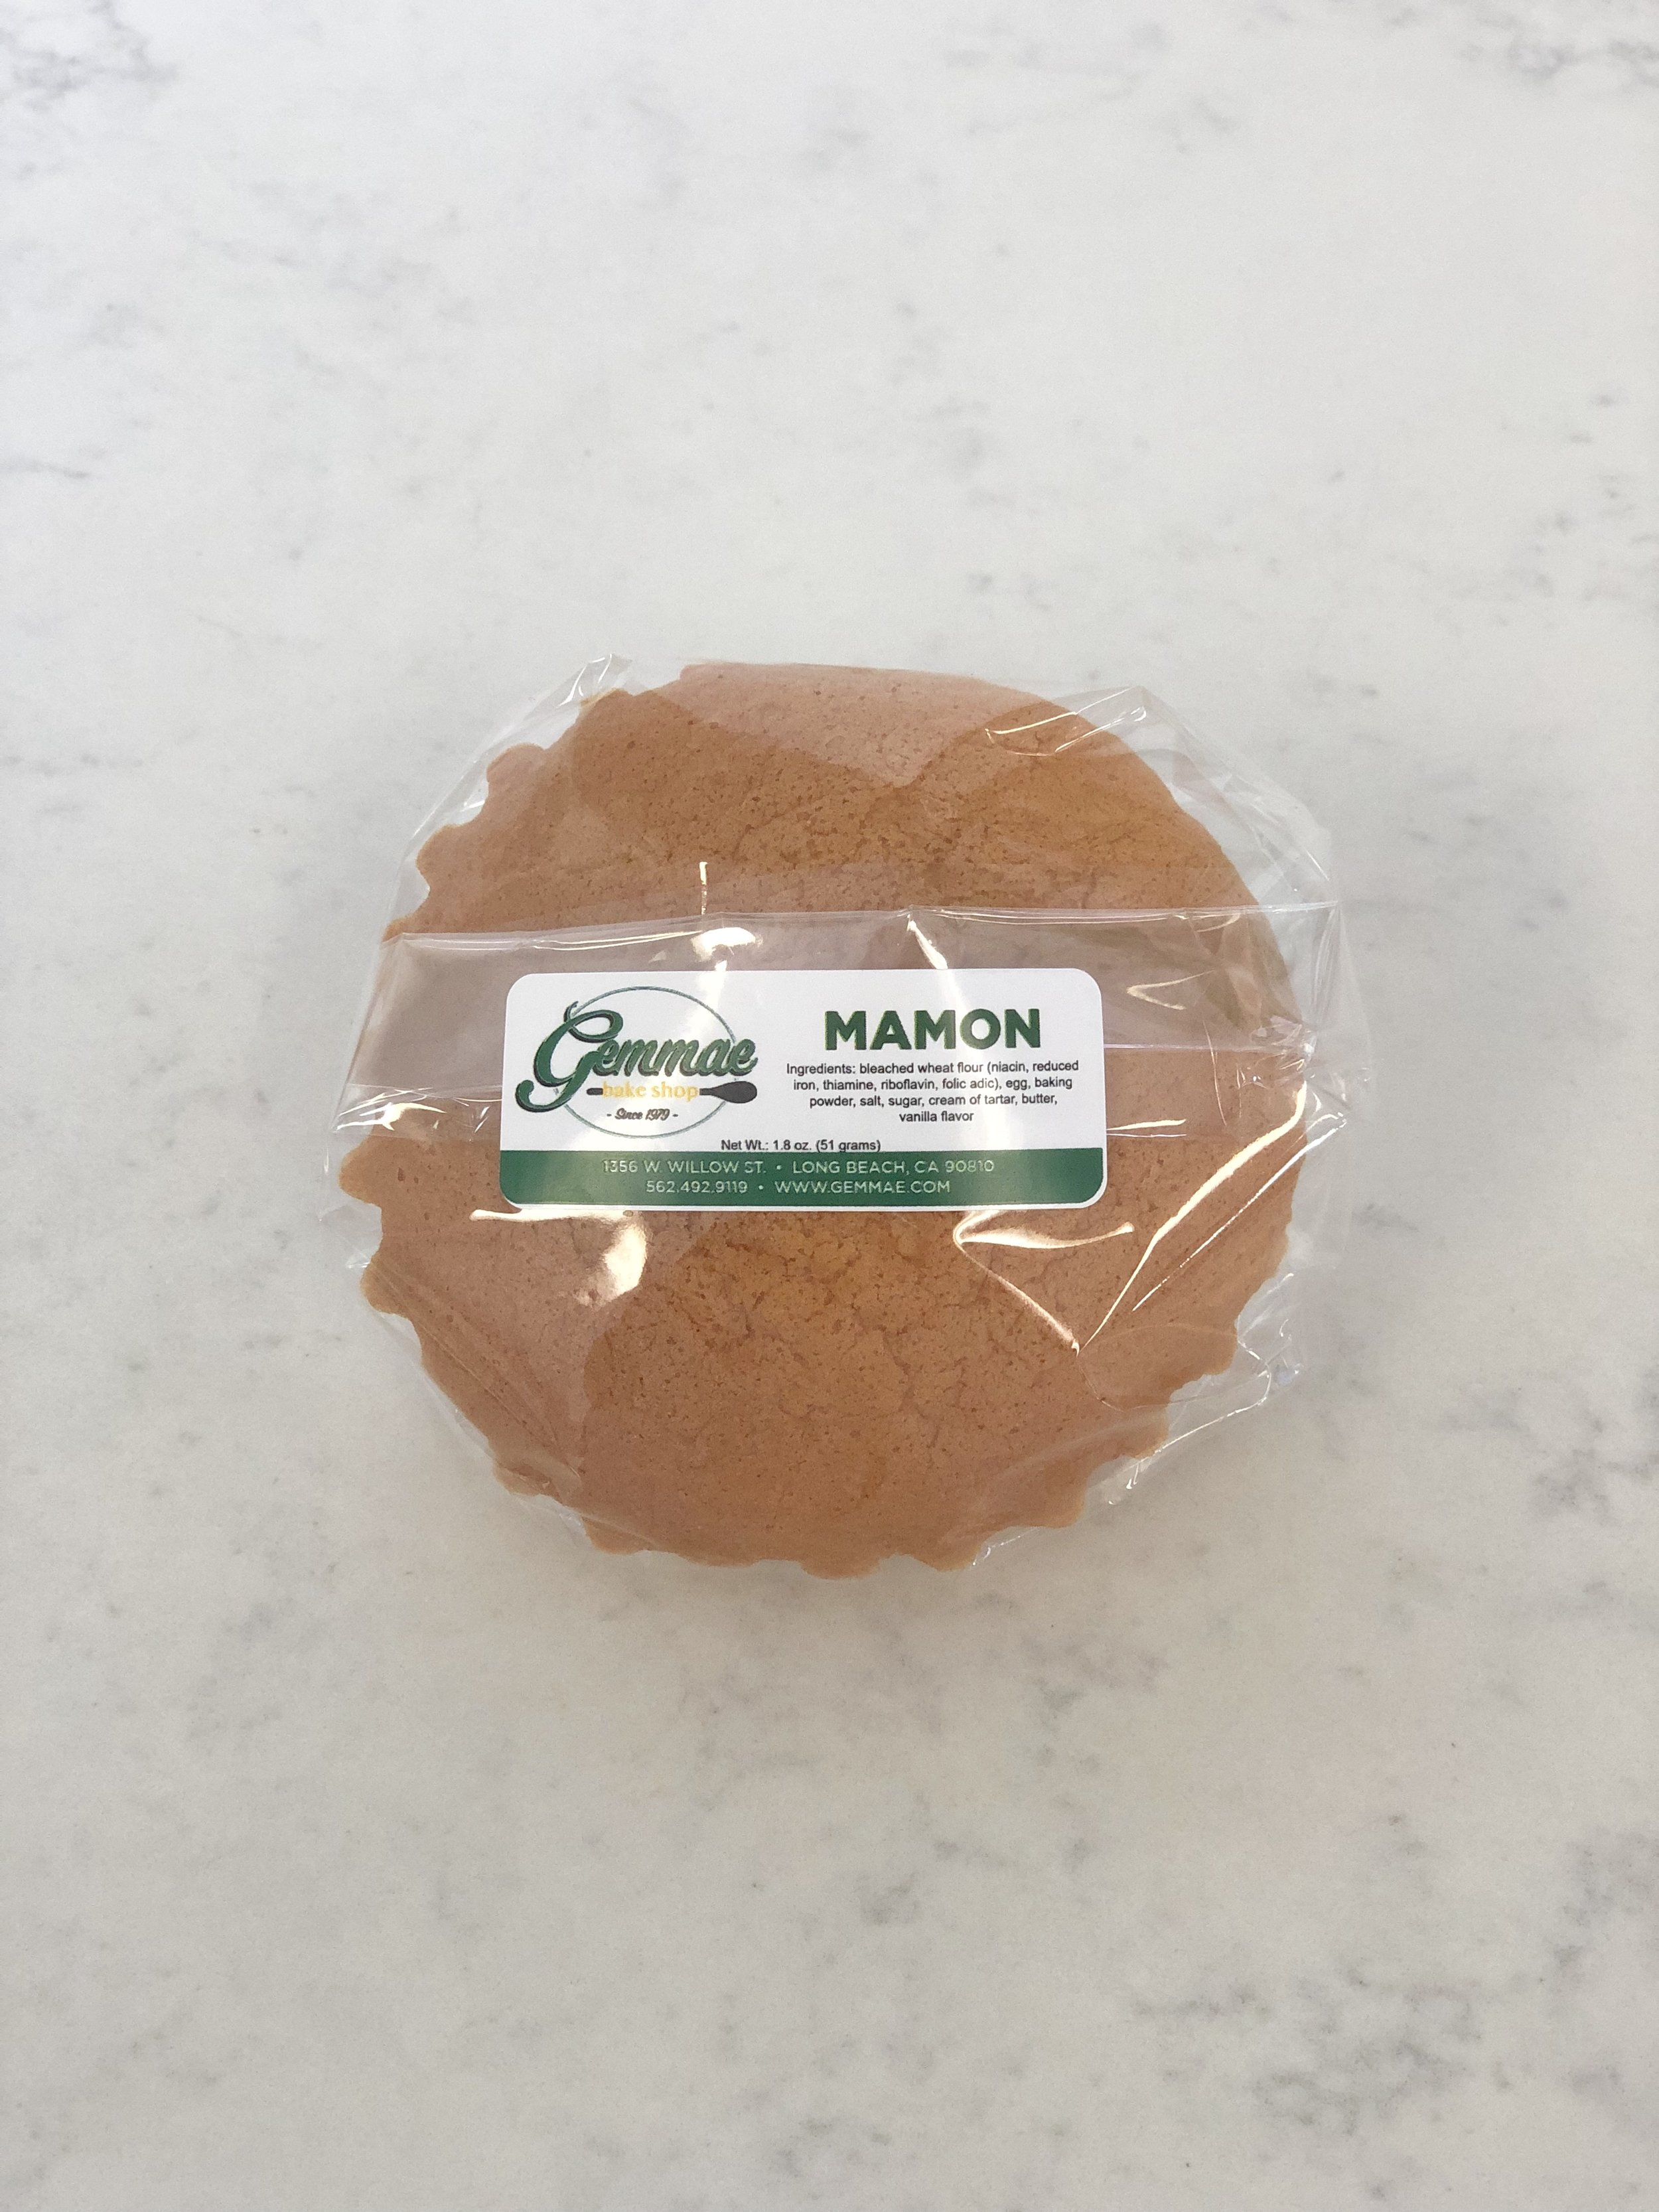 MAMON   Our soft and fluffy, traditional Filipino sponge cake snack.